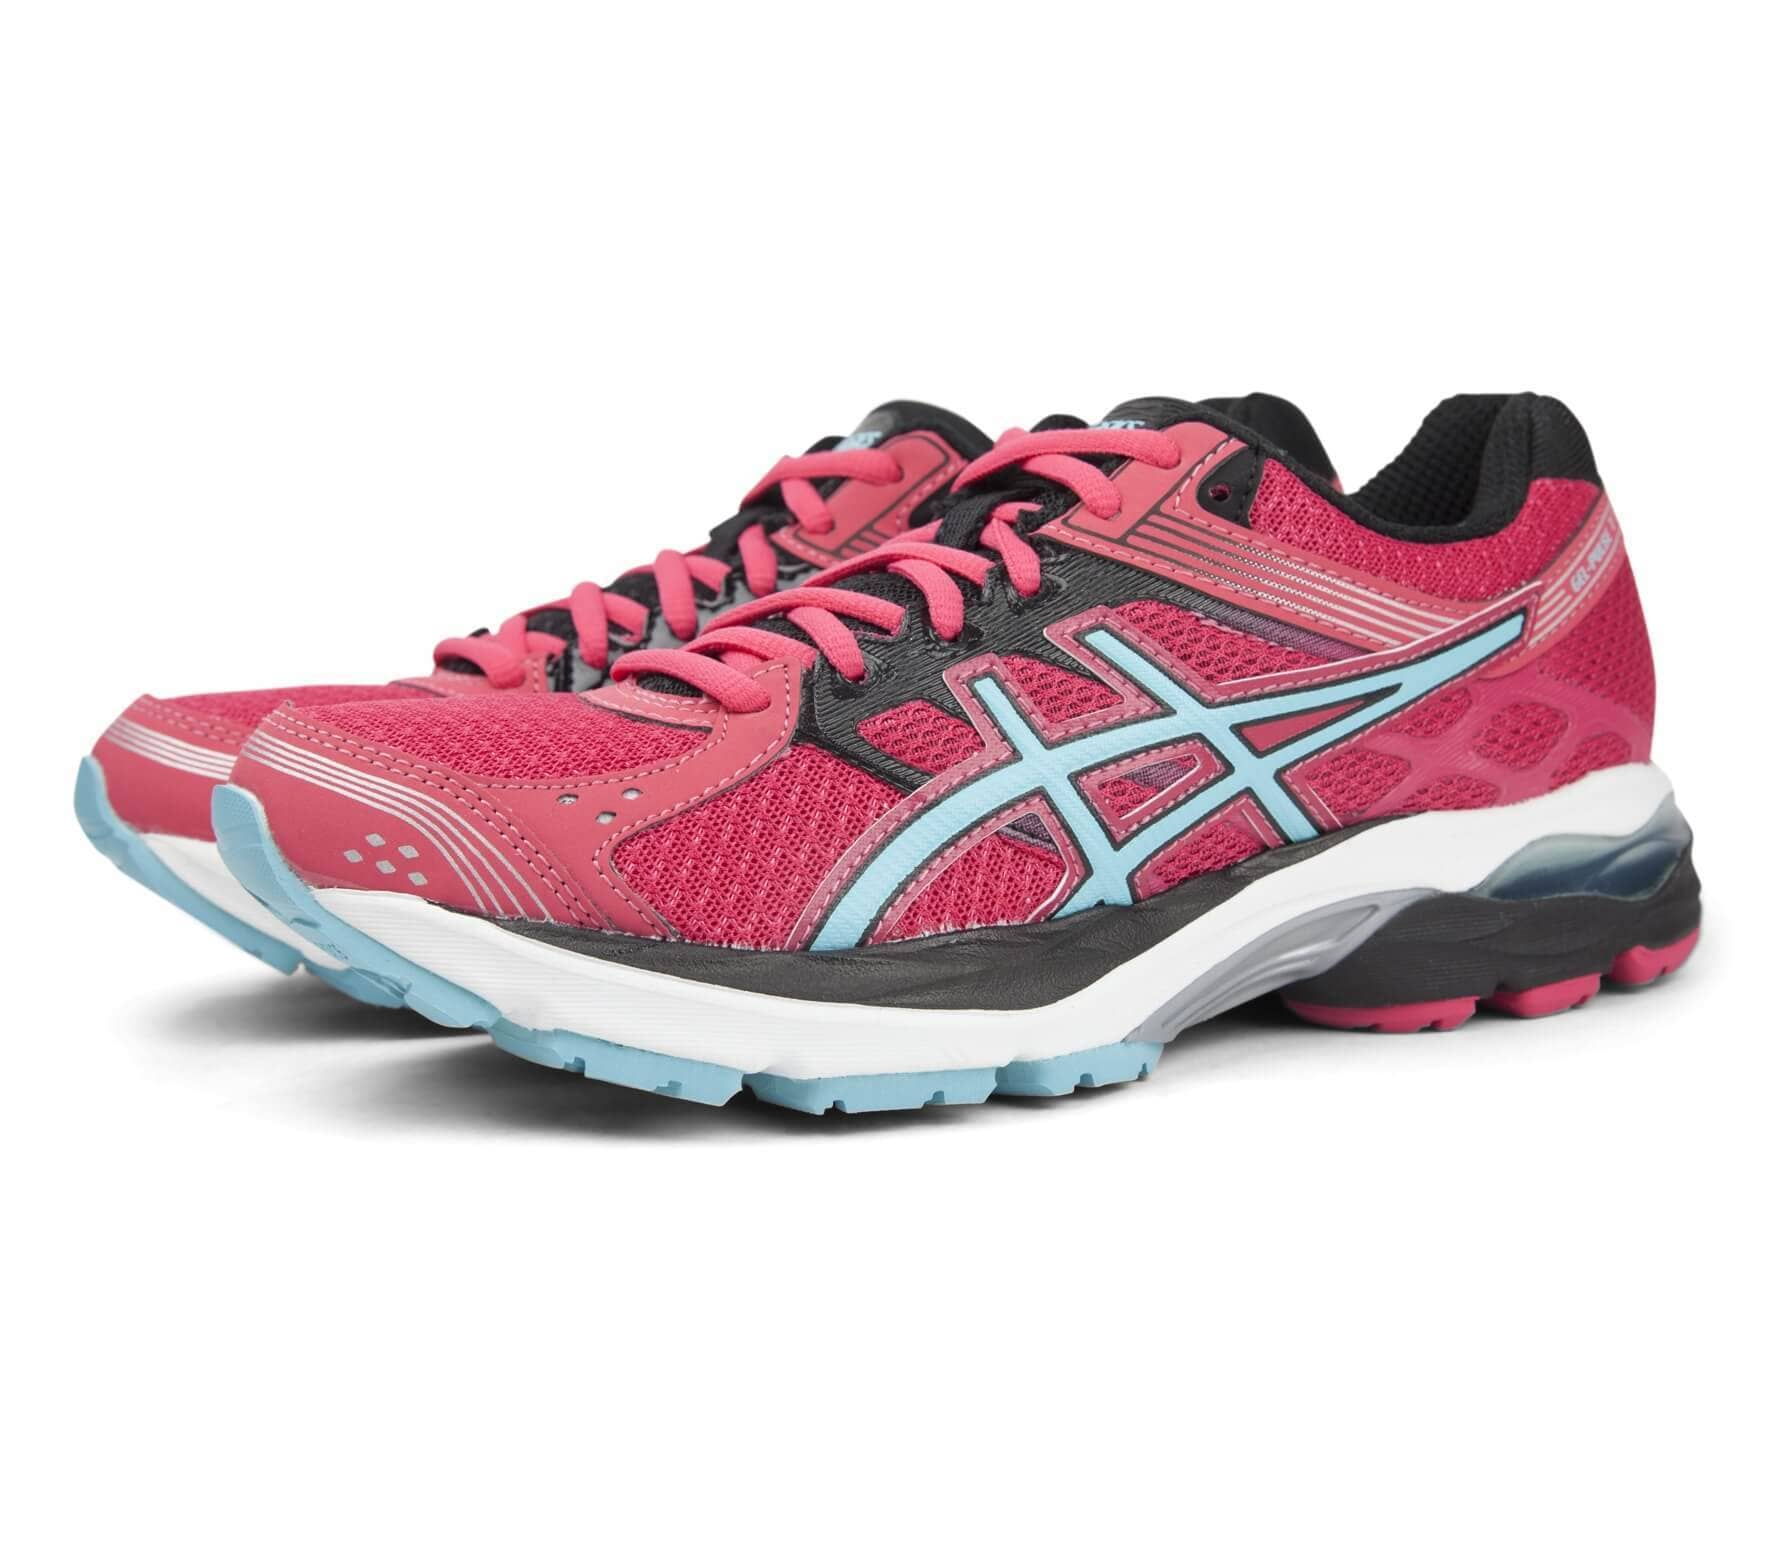 100% top quality great fit reasonable price ASICS - Gel-Pulse 7 women's running shoes (pink/blue)